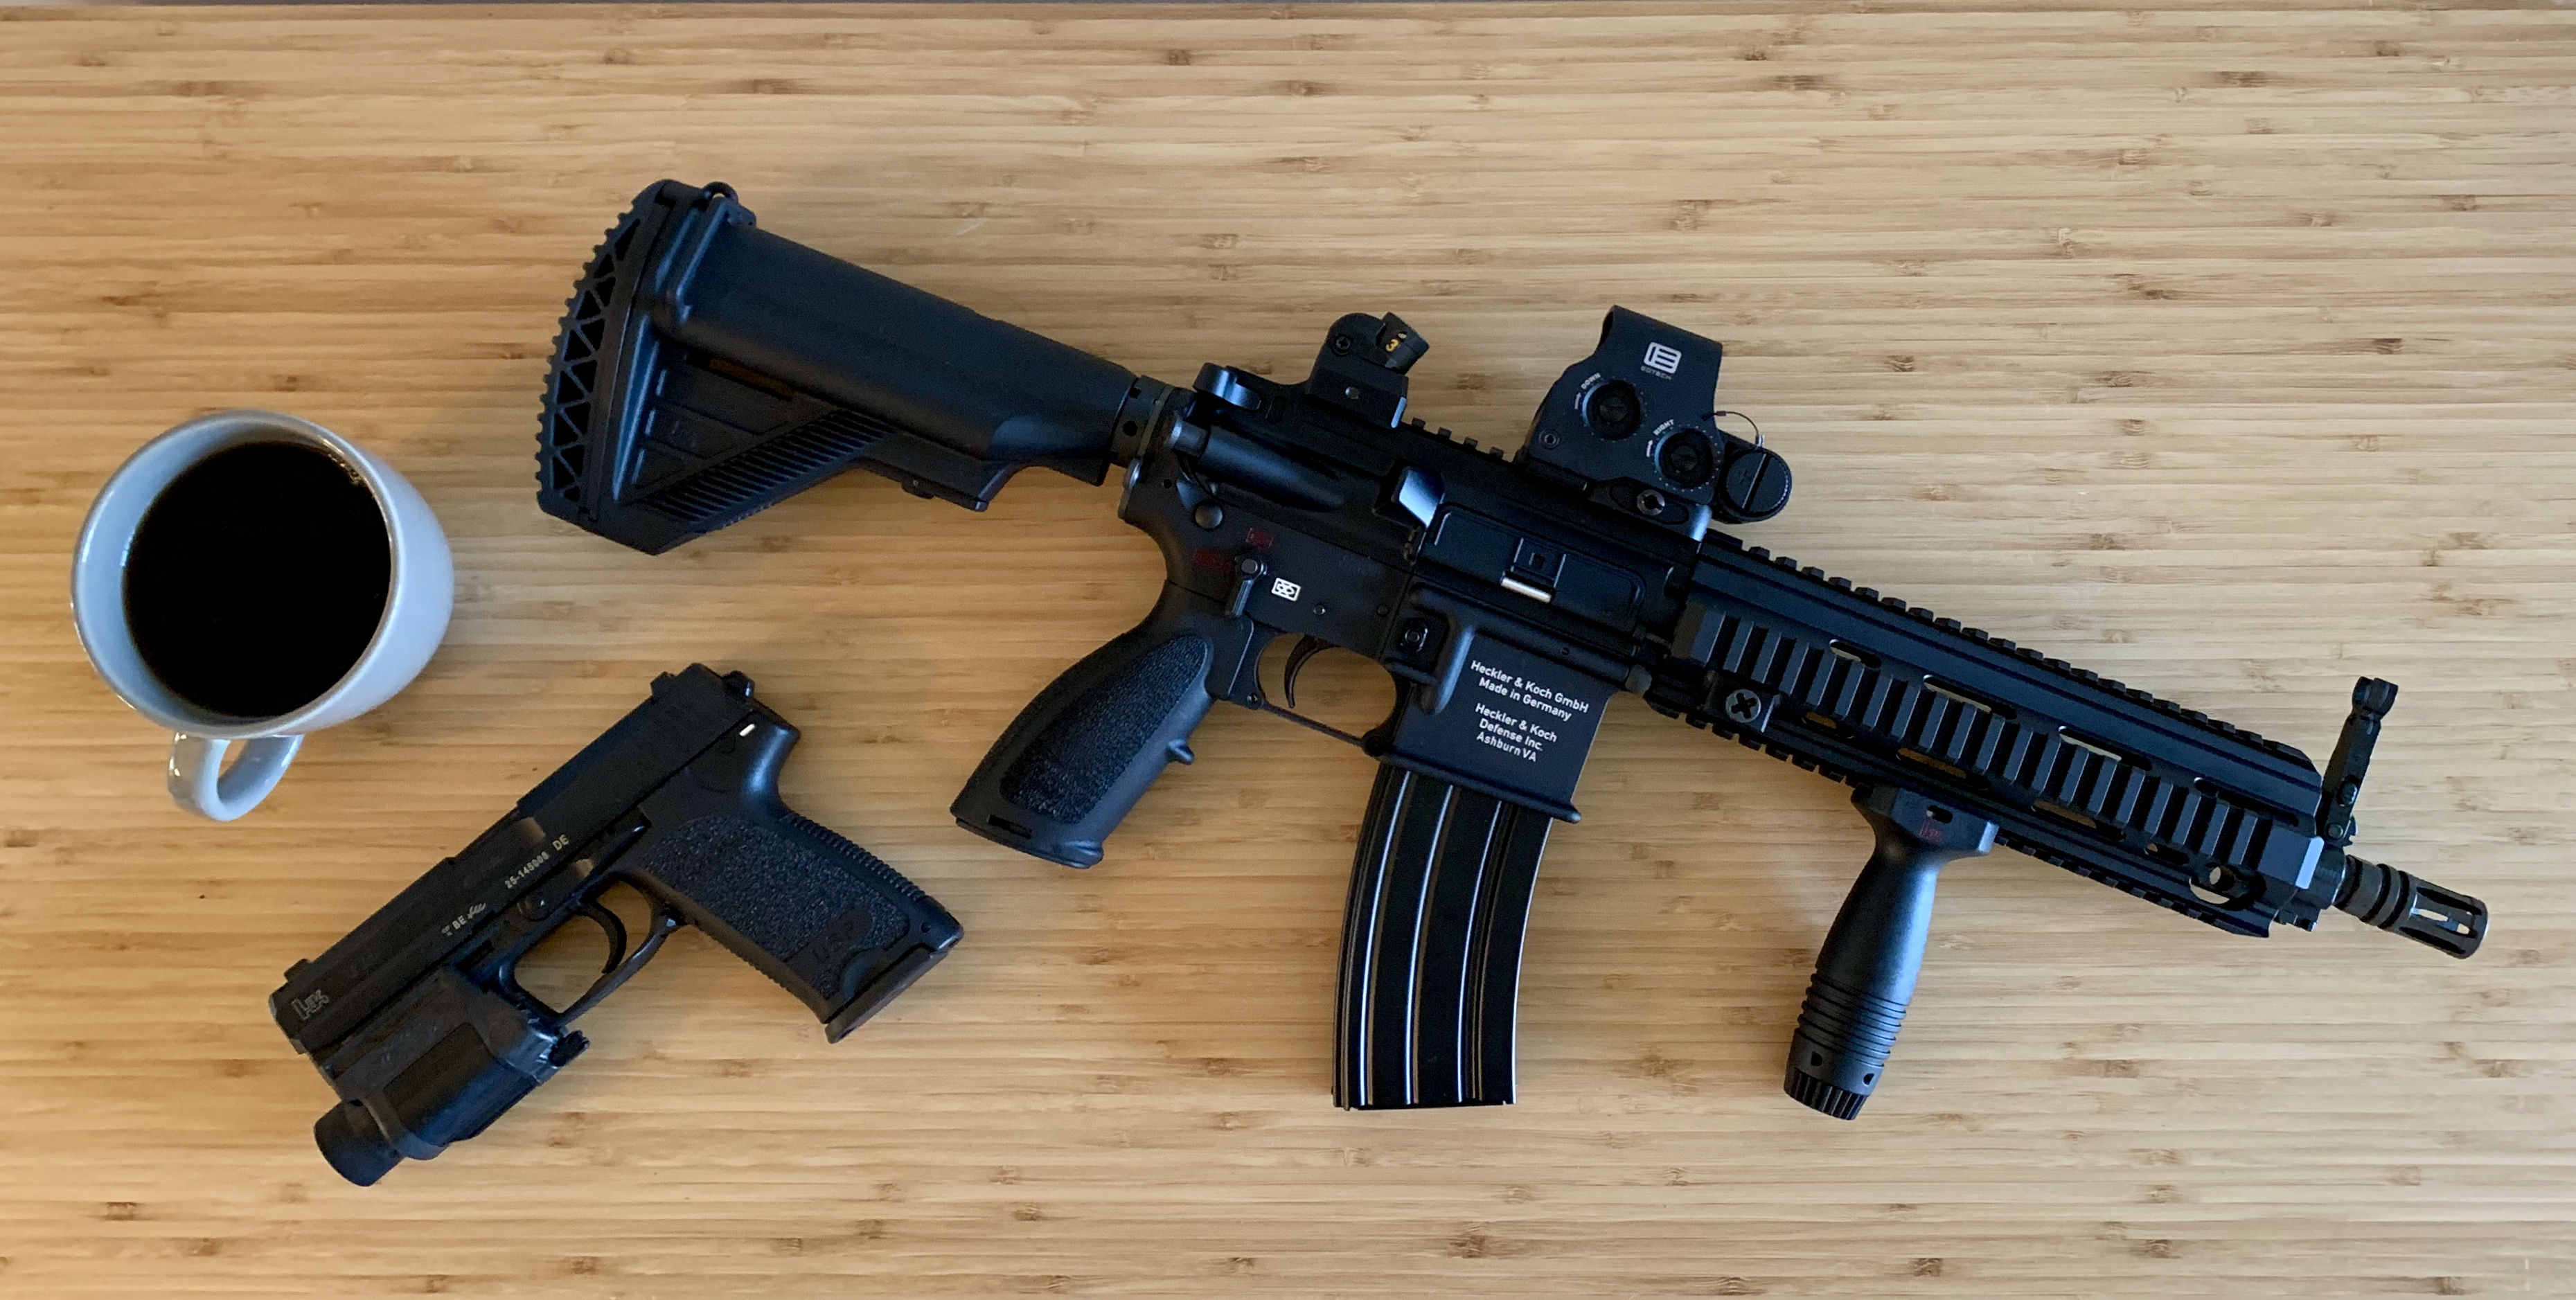 HK416 Owners Picture Thread (genuine HK416's only please)-fullsizeoutput_1aaa.jpeg